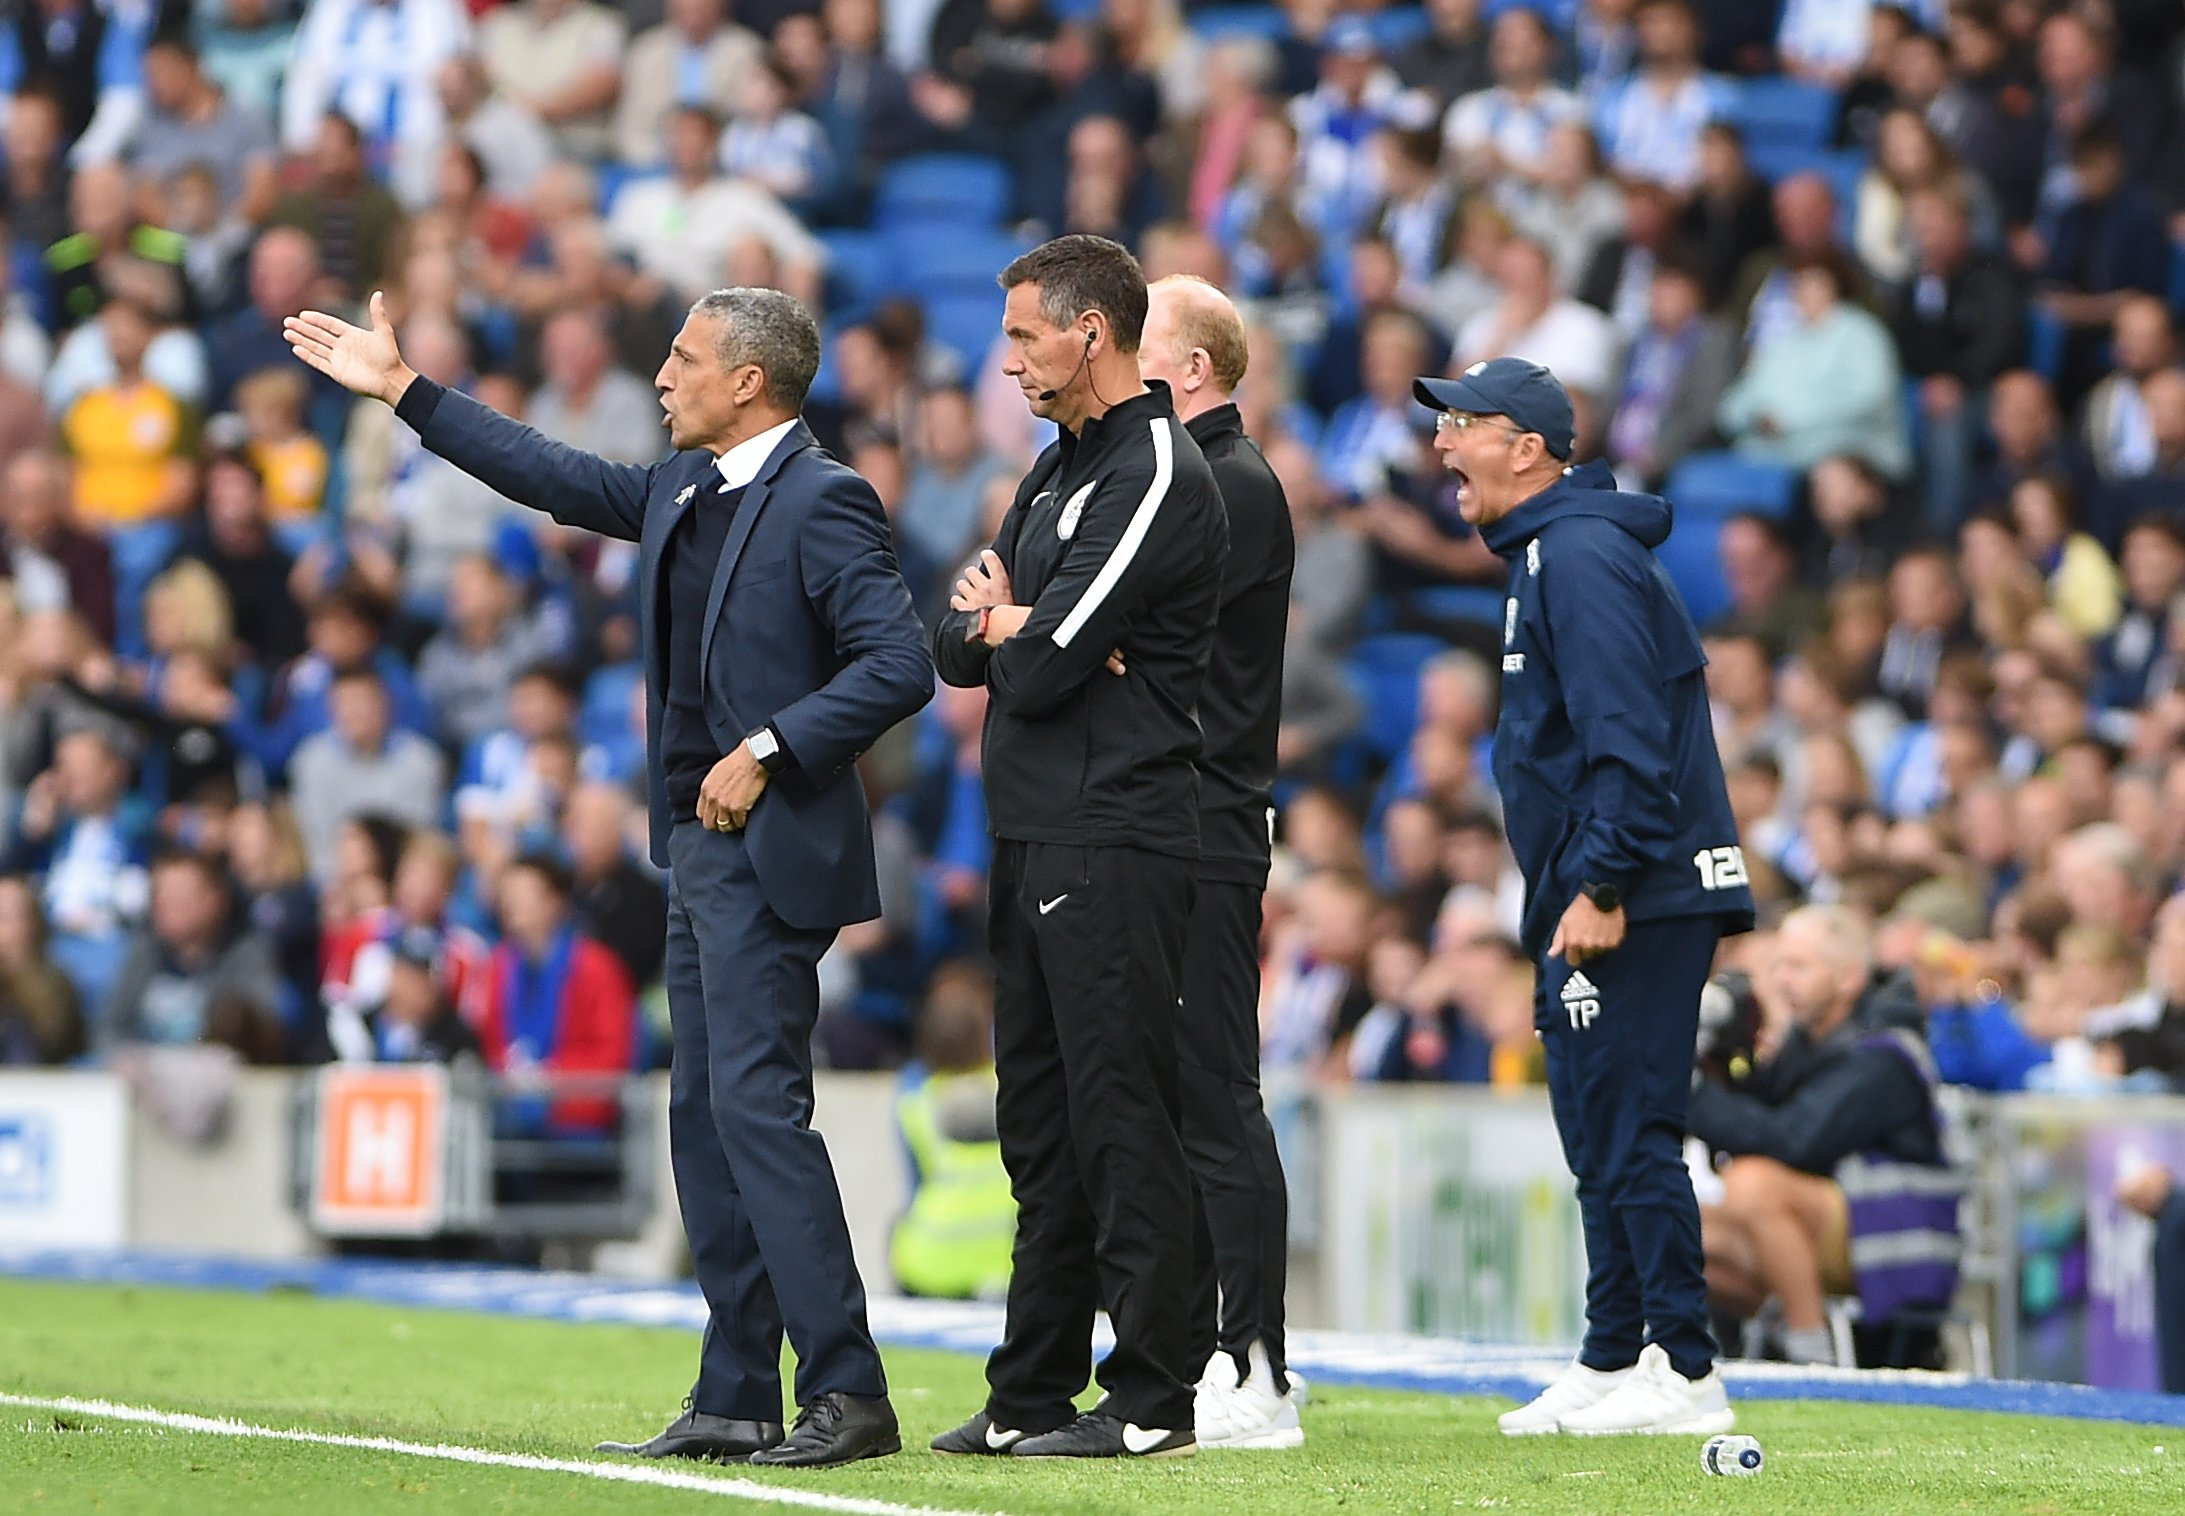 Chris Hughton masterminded Albion's victory over West Brom. Picture Liz Finlayson